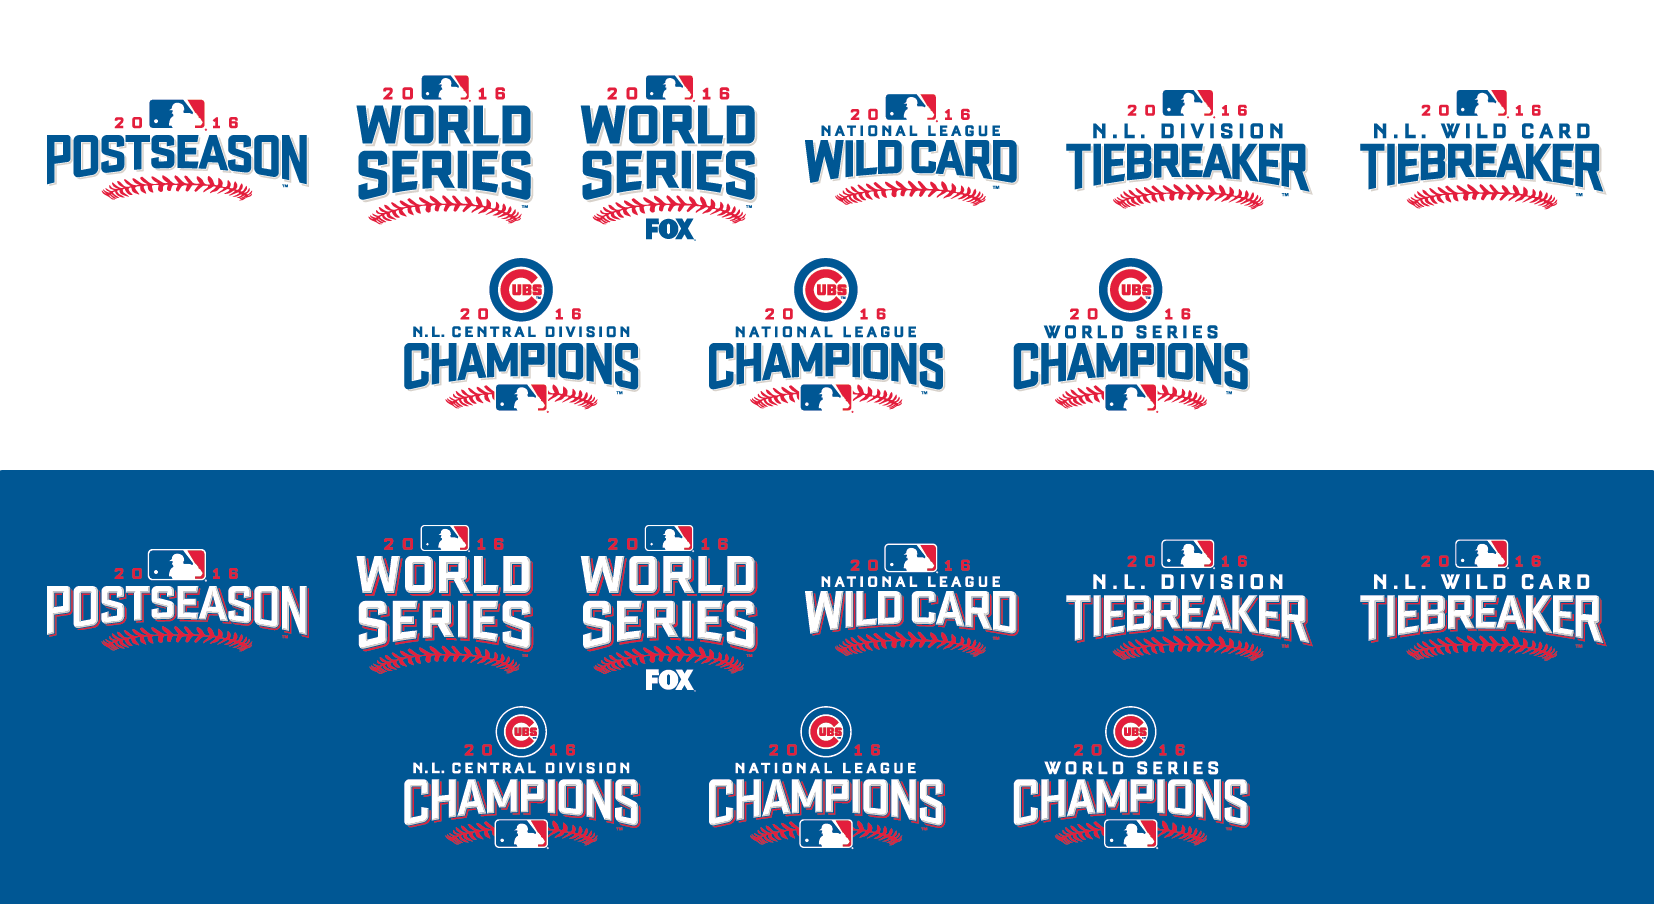 WS16_ChampionsMarks_ChicagoCubs.jpg